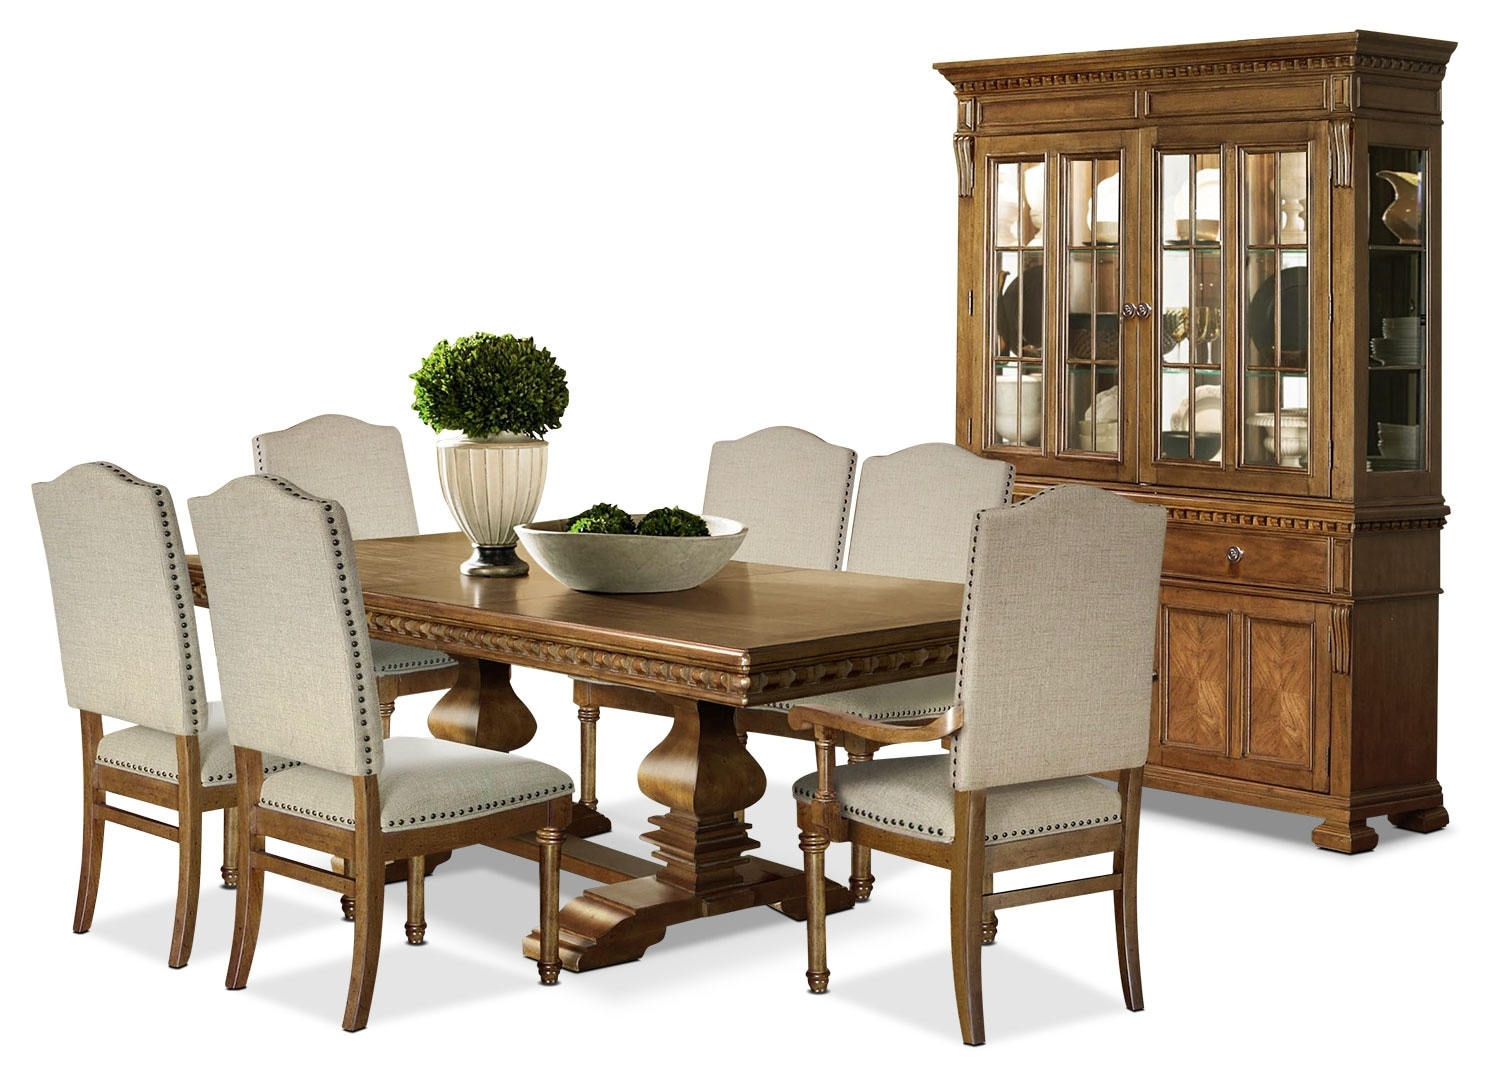 Dining Room Furniture - Clairmont 9-Piece Dining Package